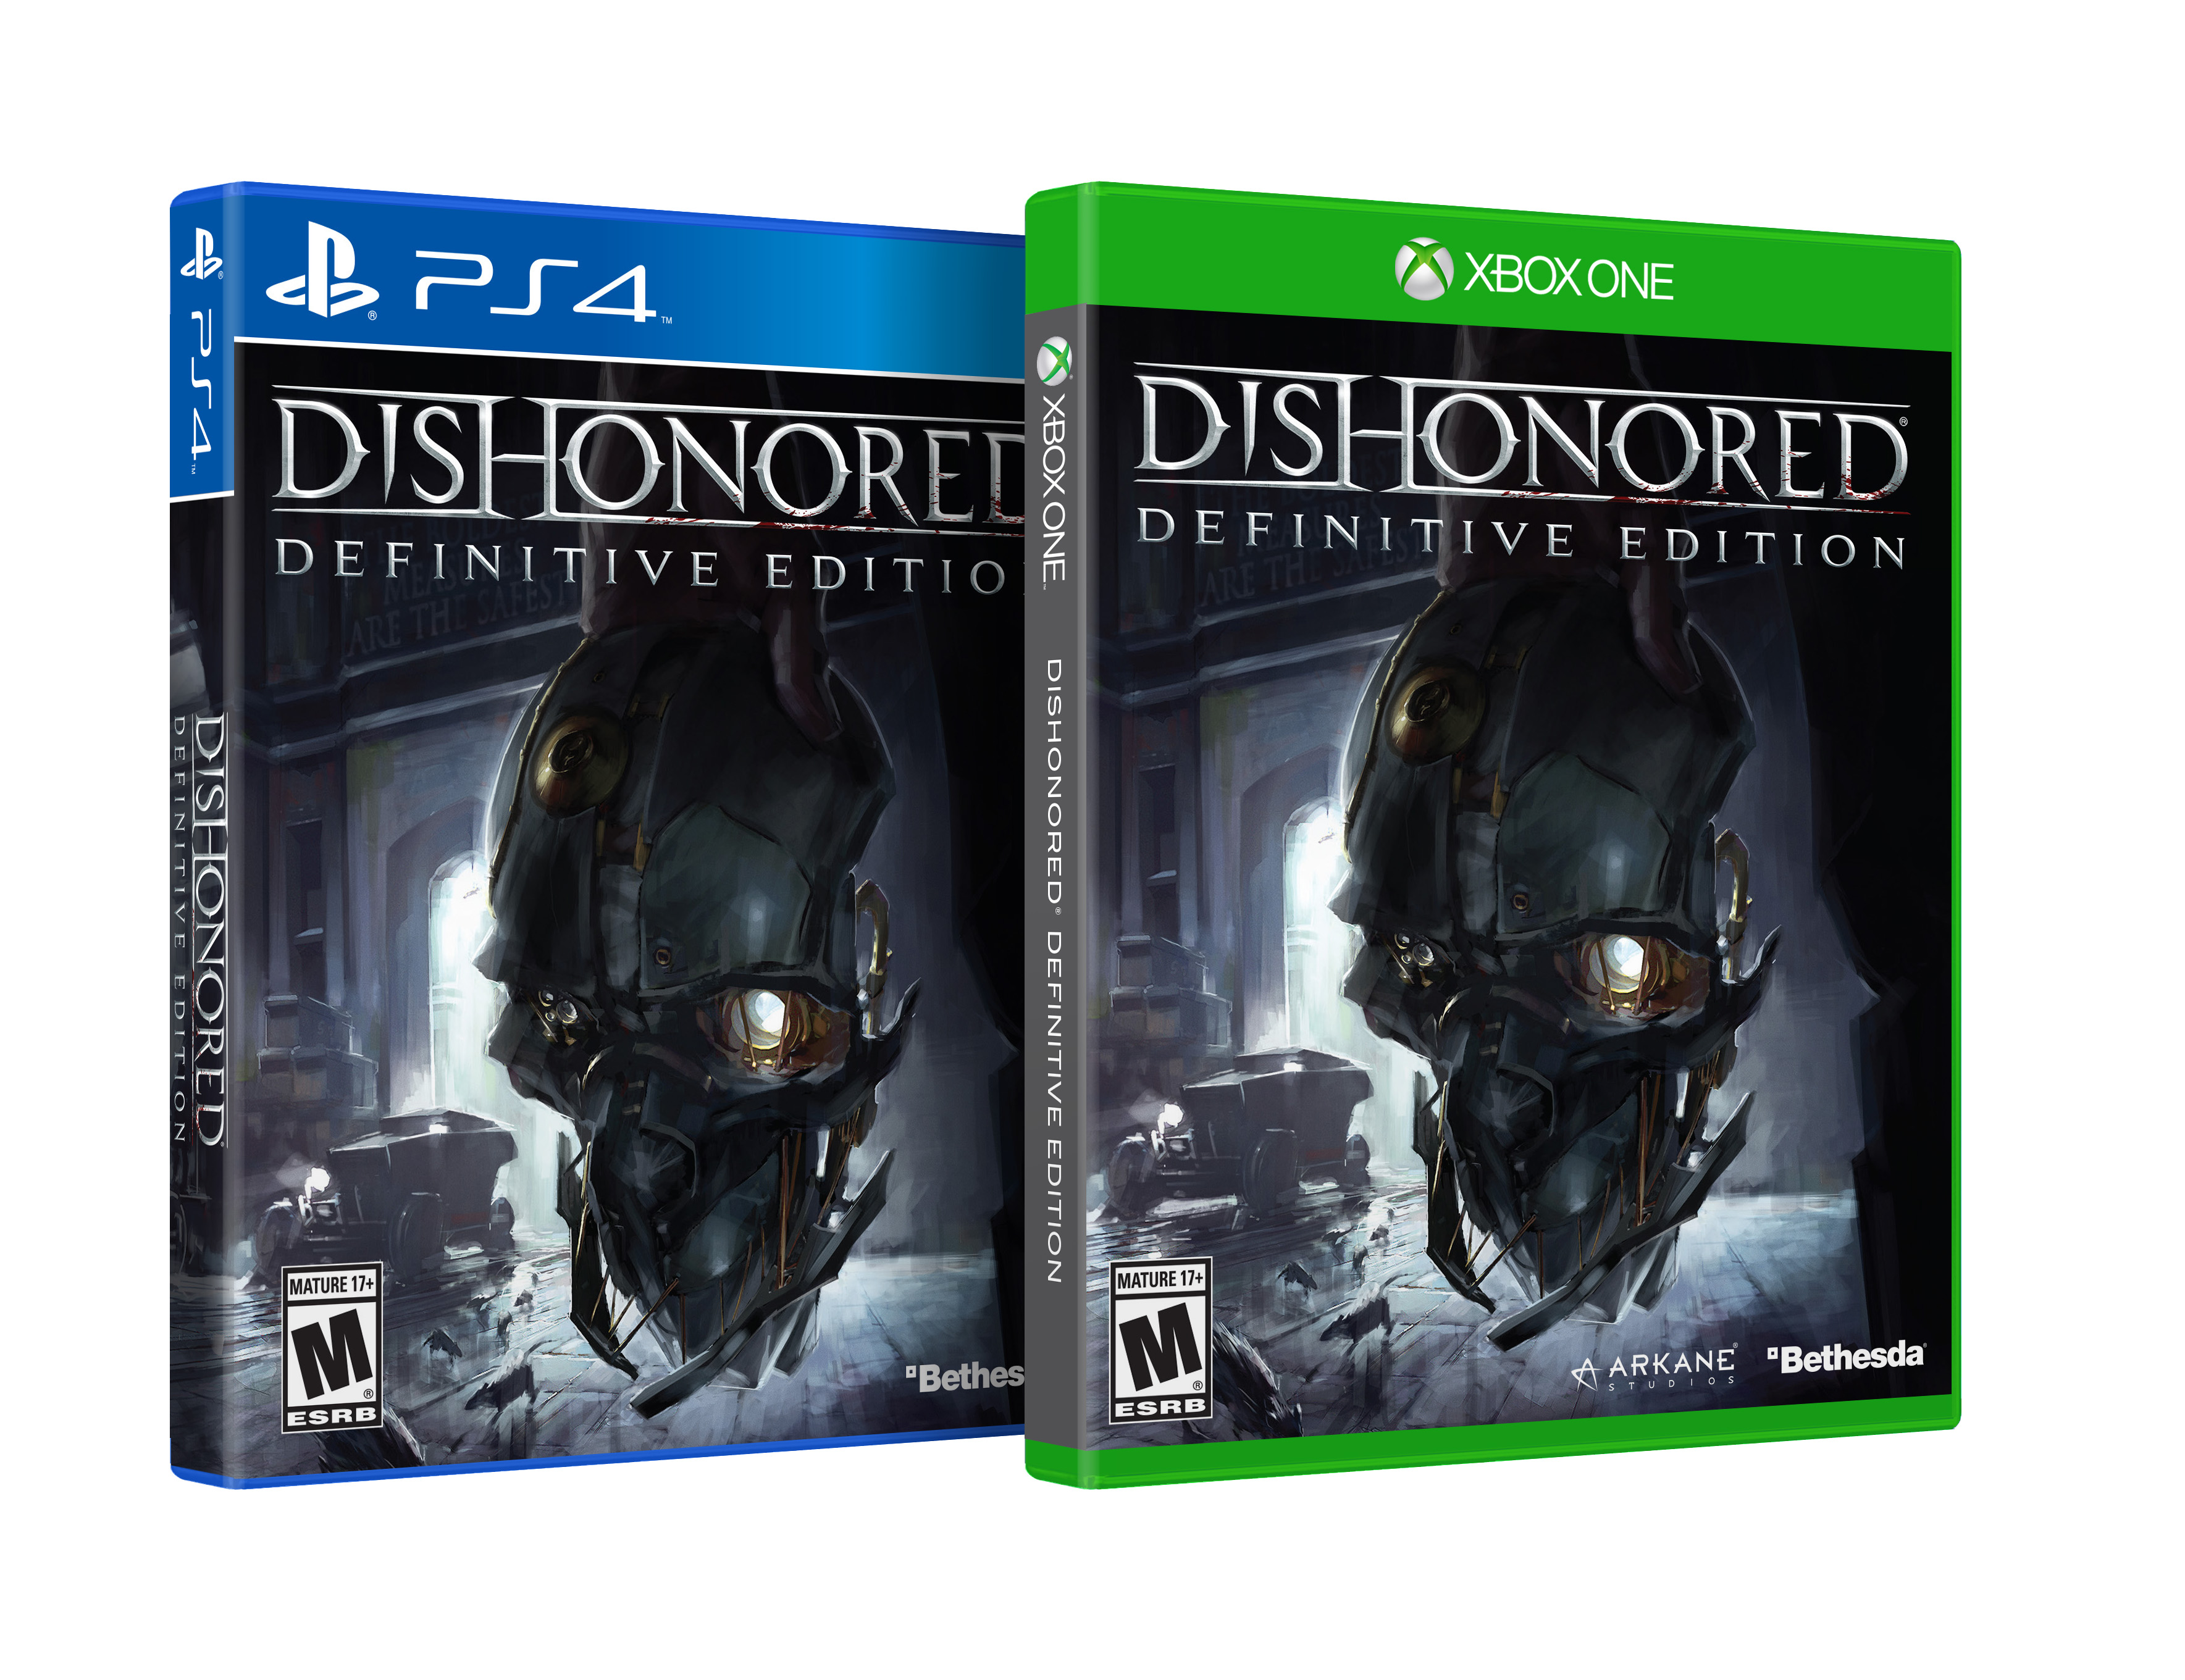 Dishonored_Definitive_Edition_allPlatforms_3D_box_1434319538